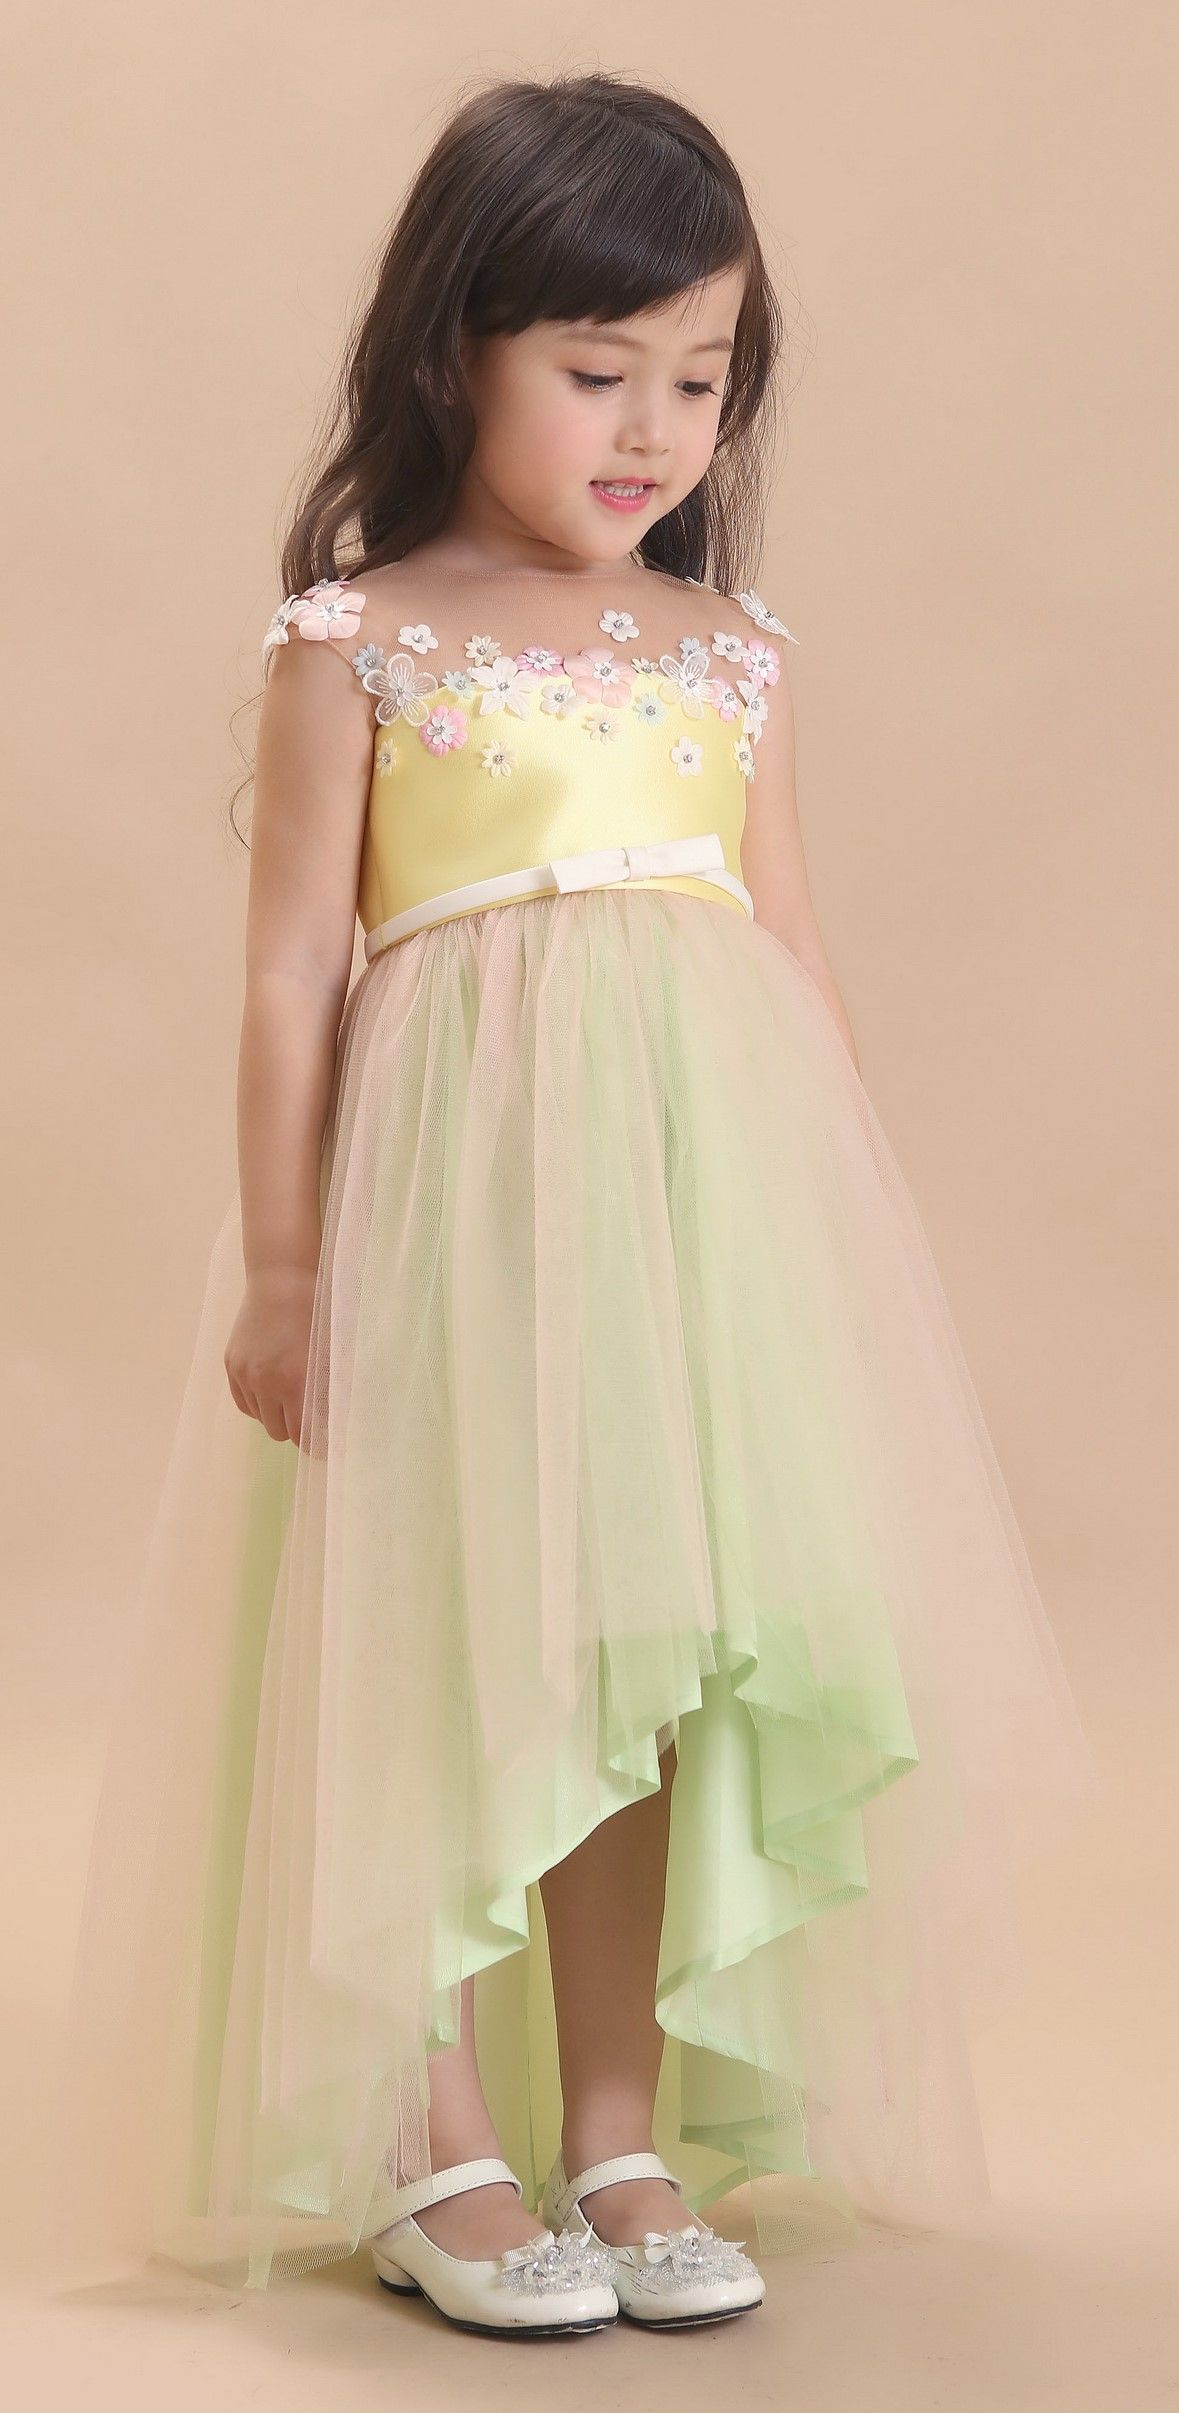 329c995ca DORIAN HO Baby Doll FW 17/18 Wedding Dresses For Kids, Gowns For Girls